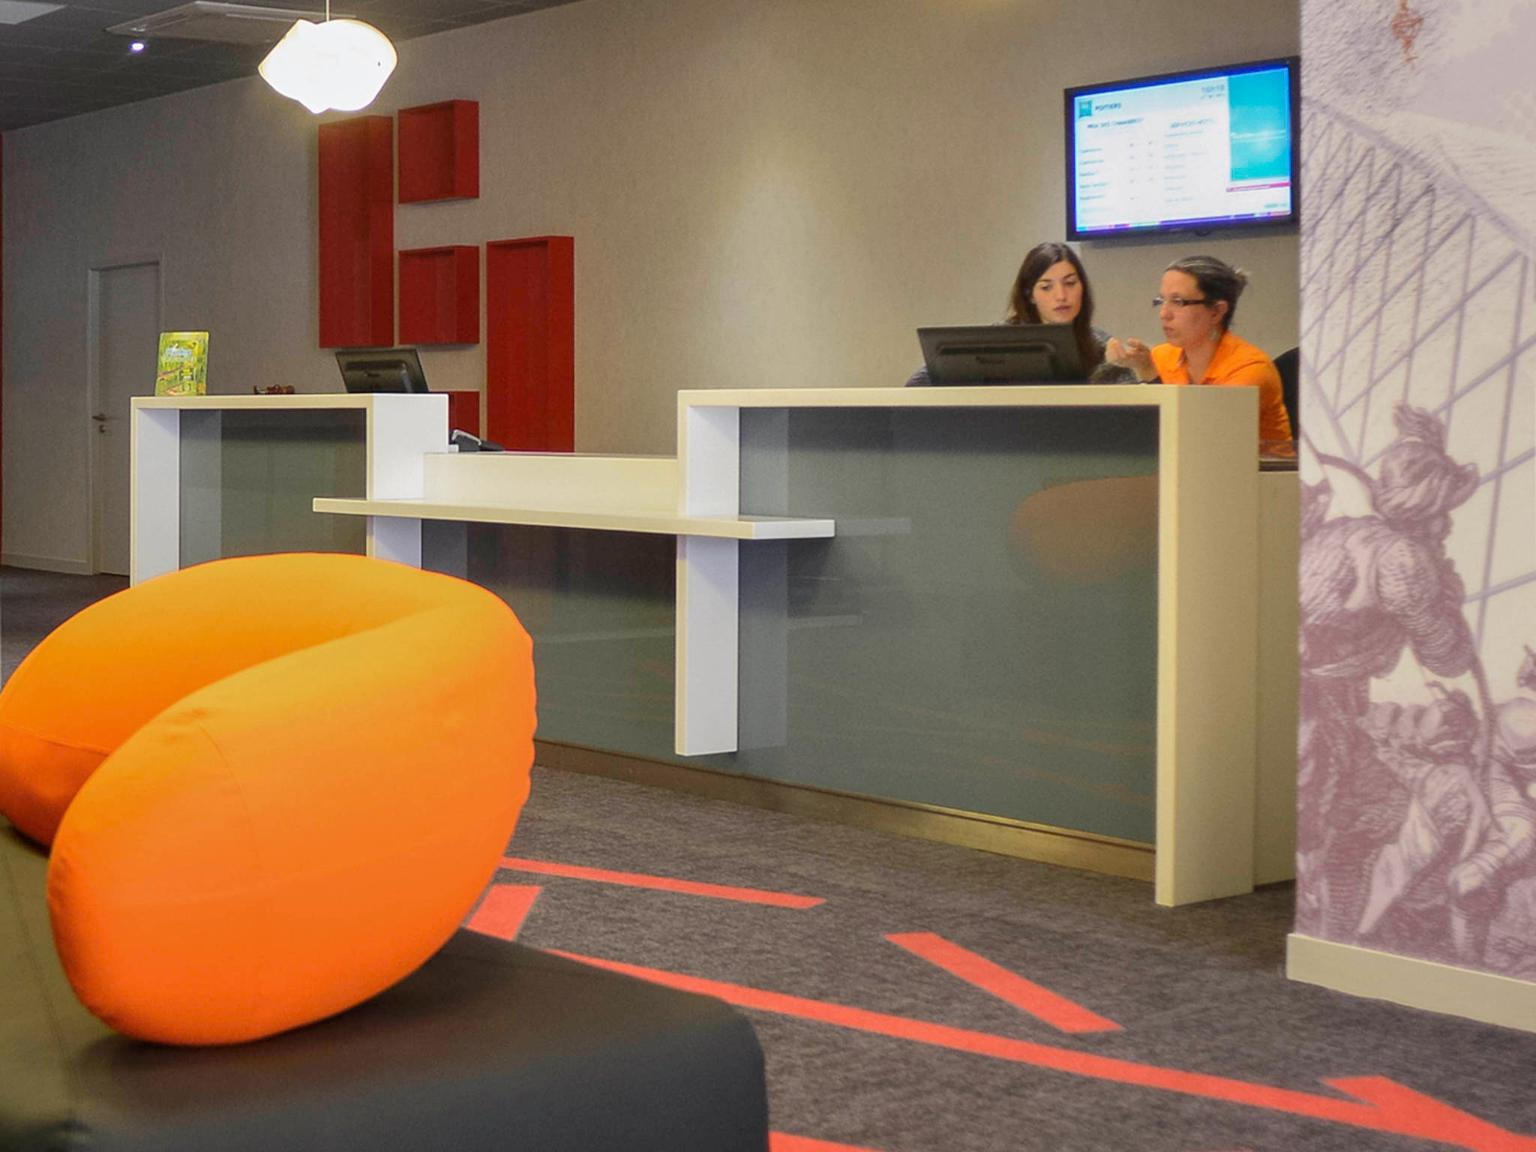 Ibis styles poitiers centre h tel 7 rue victor hugo for Hotel design poitiers